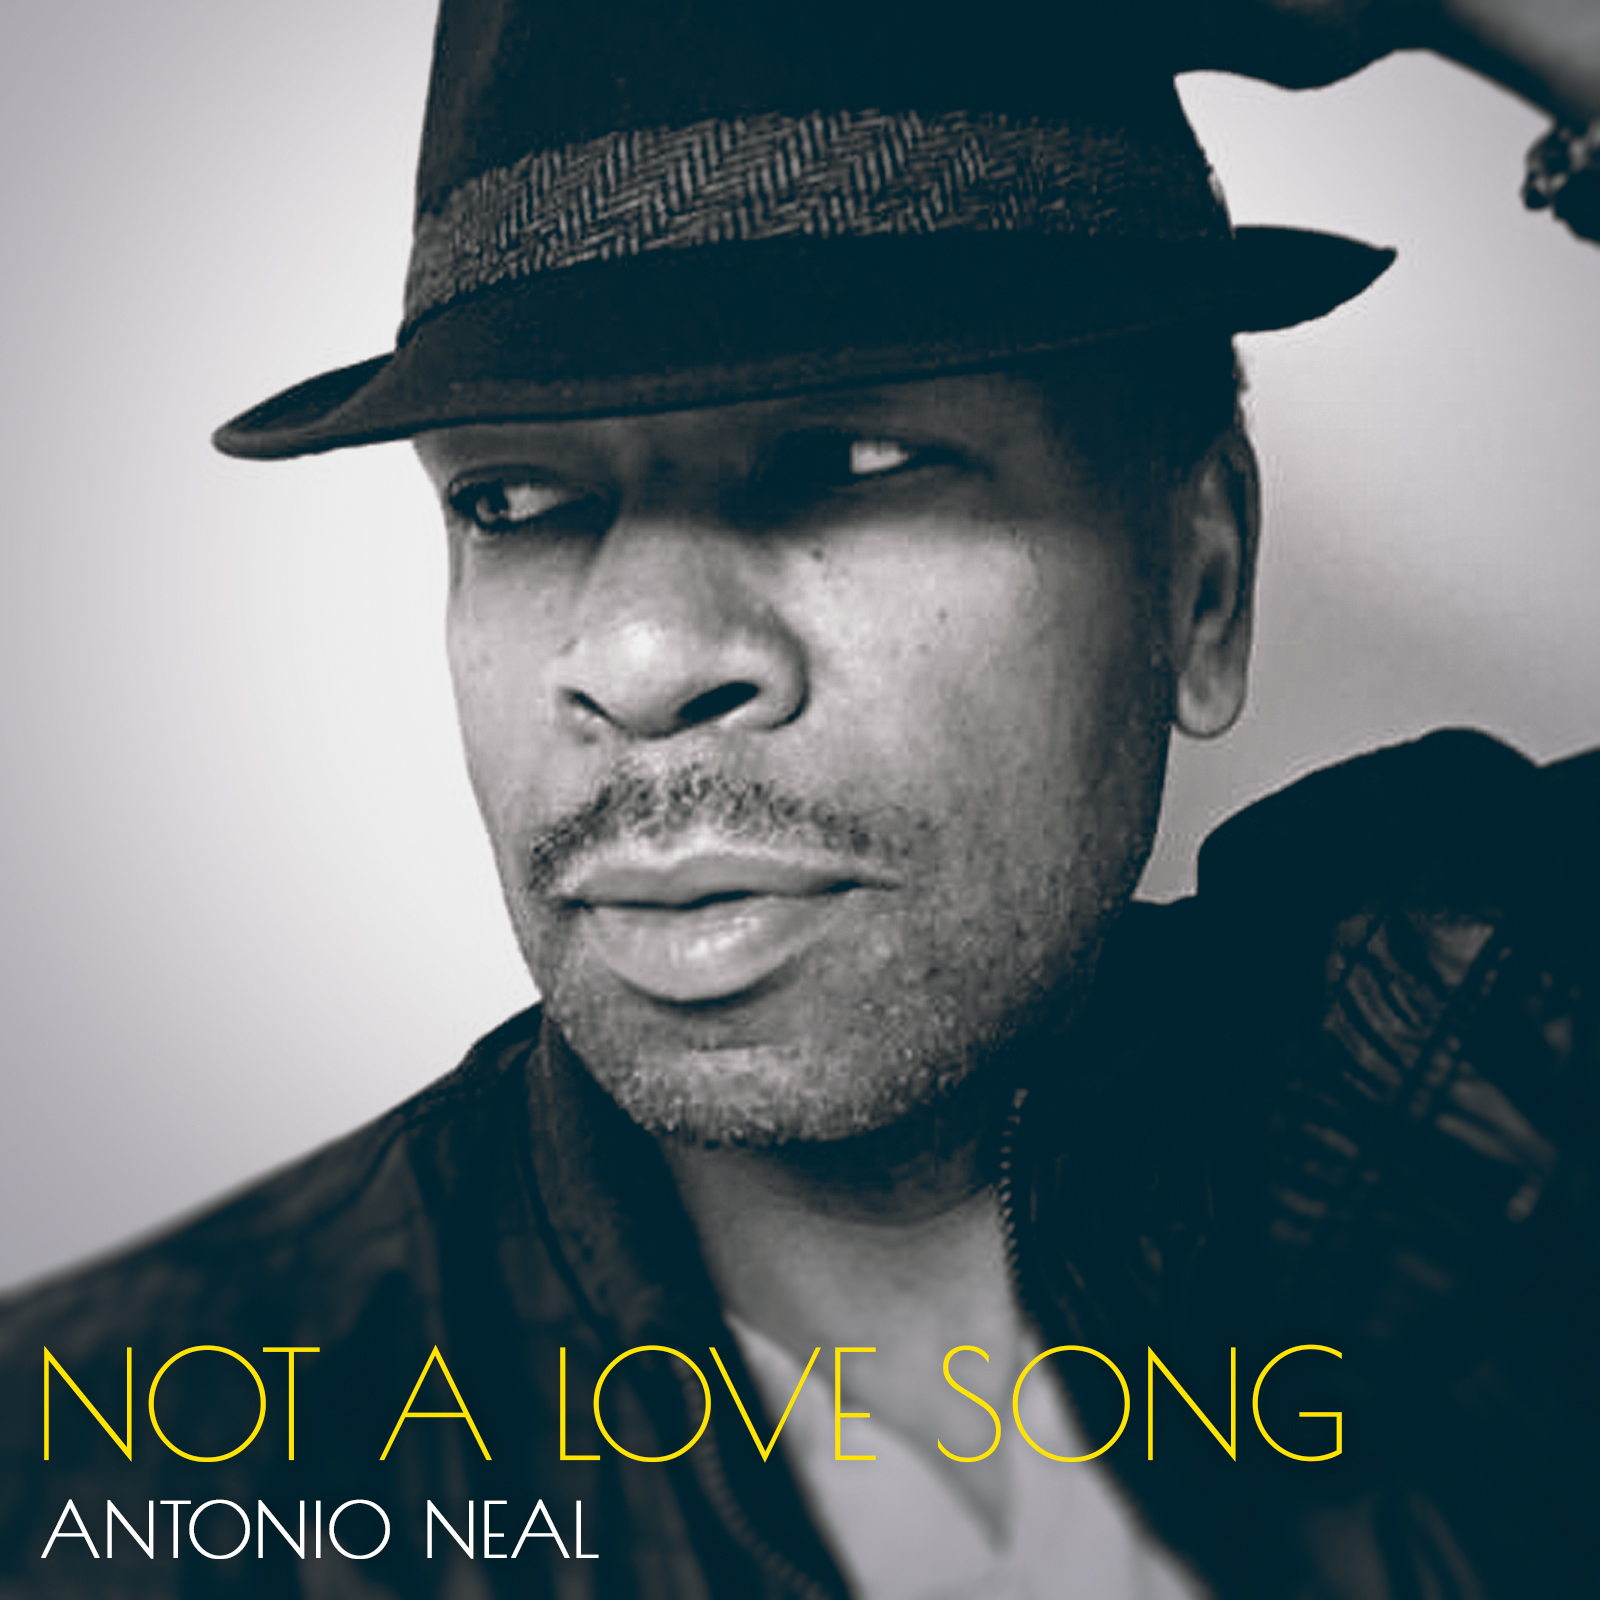 Antonio Neal / Not A Love Song: Drums. Percussion. - 2016